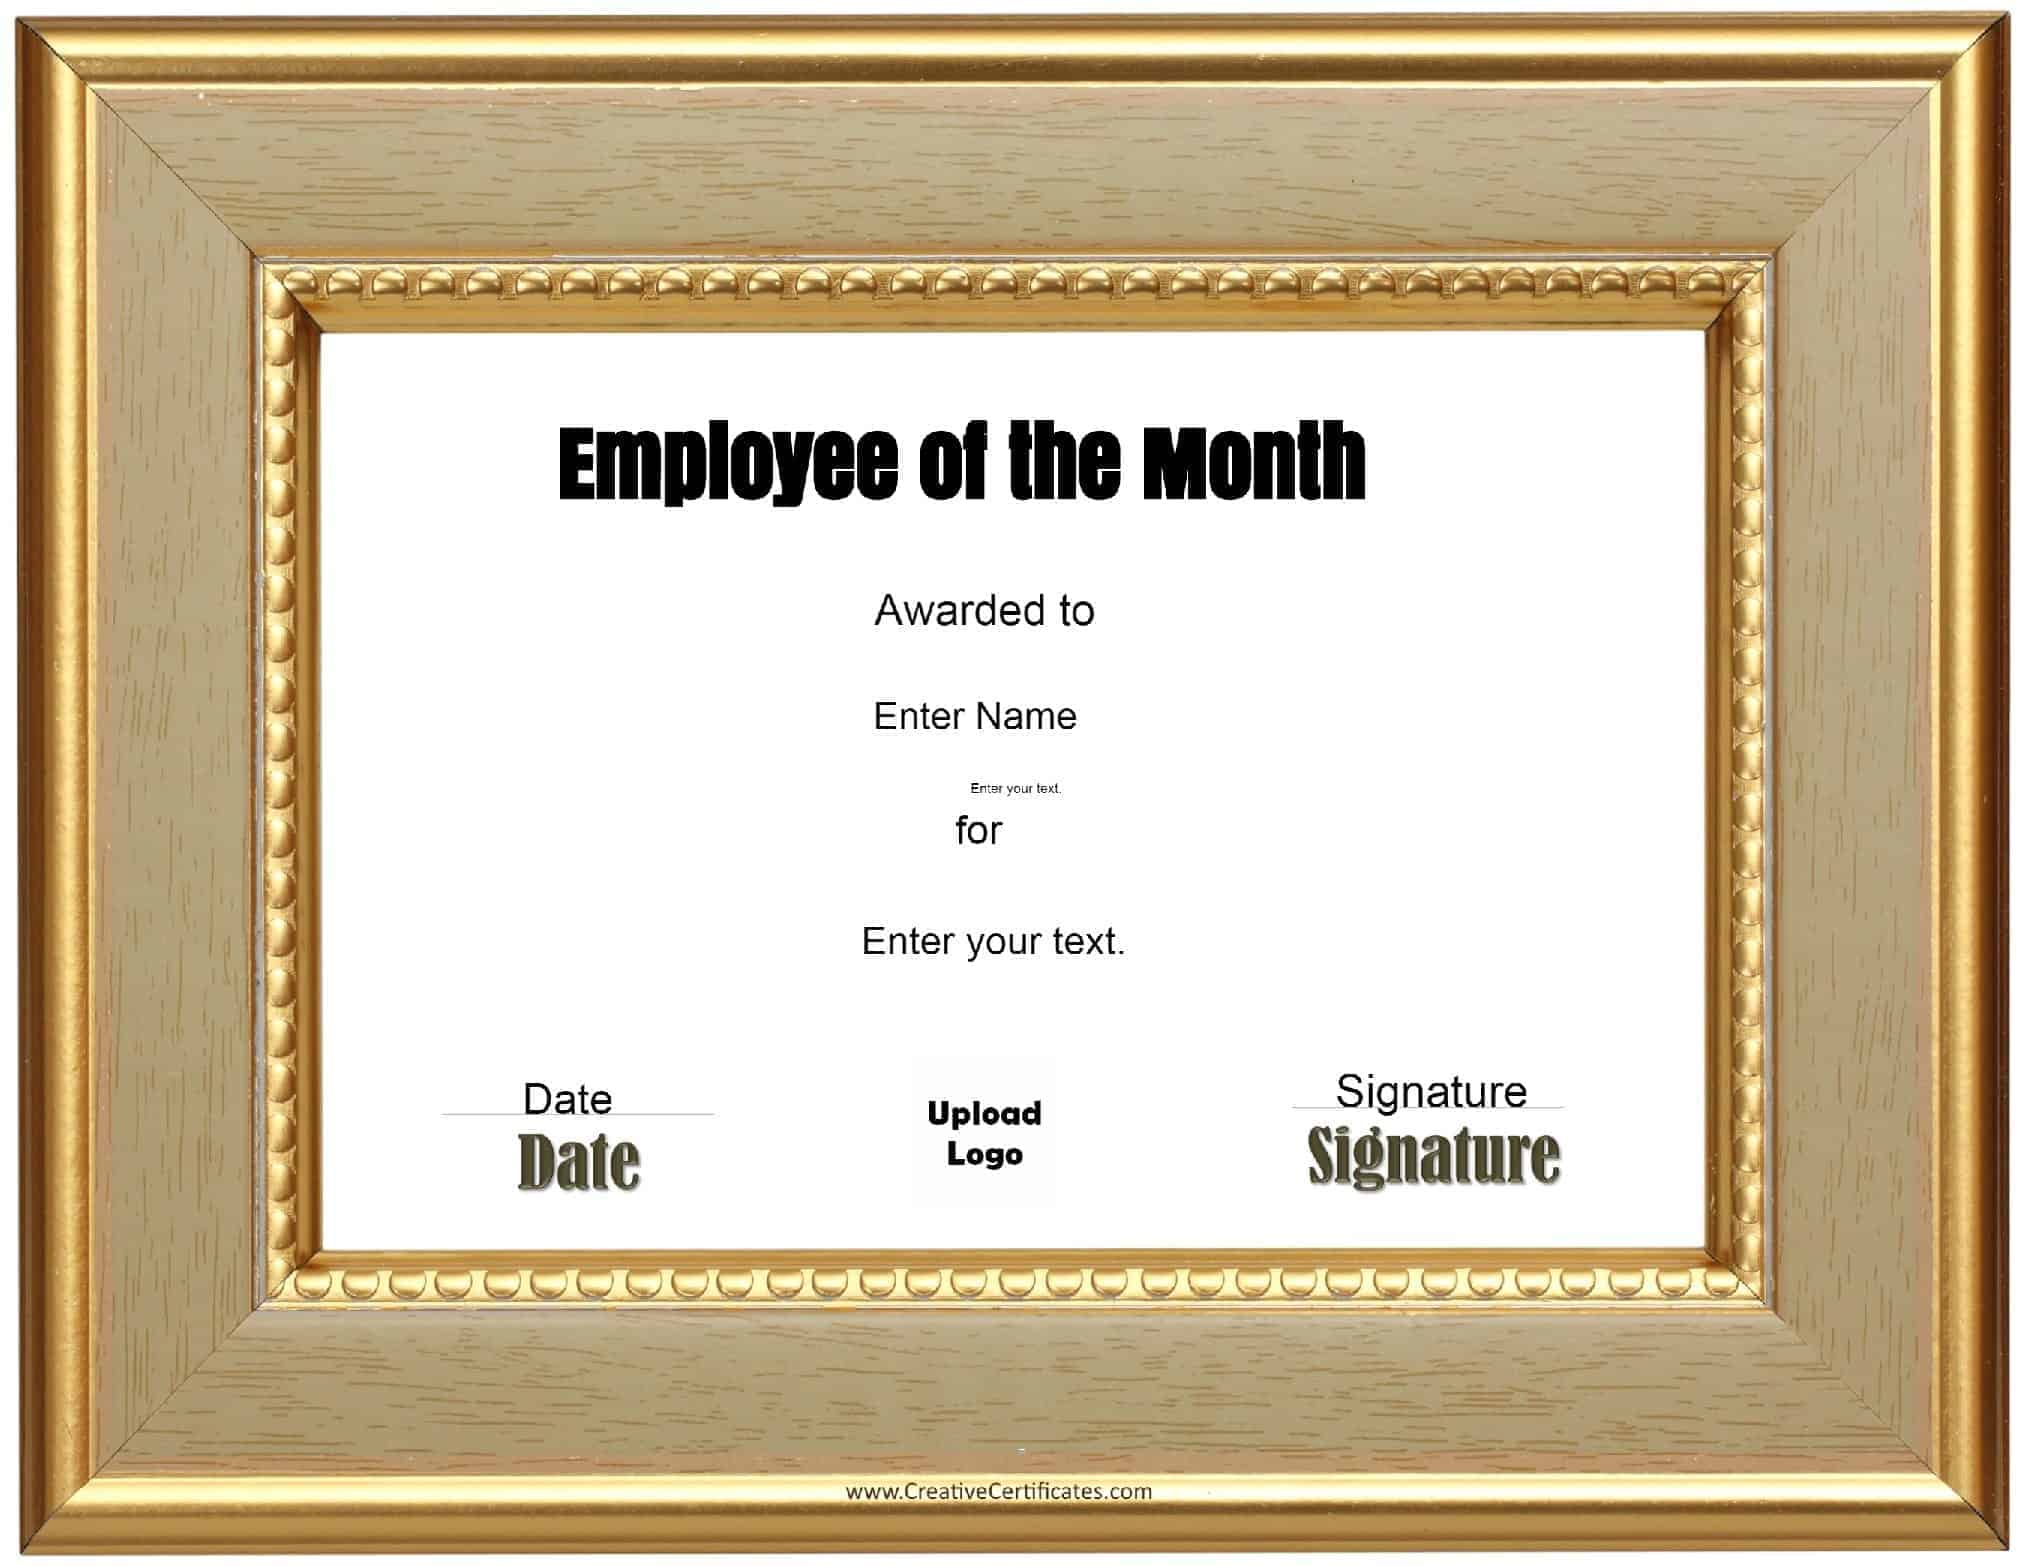 employee of the month award certificate